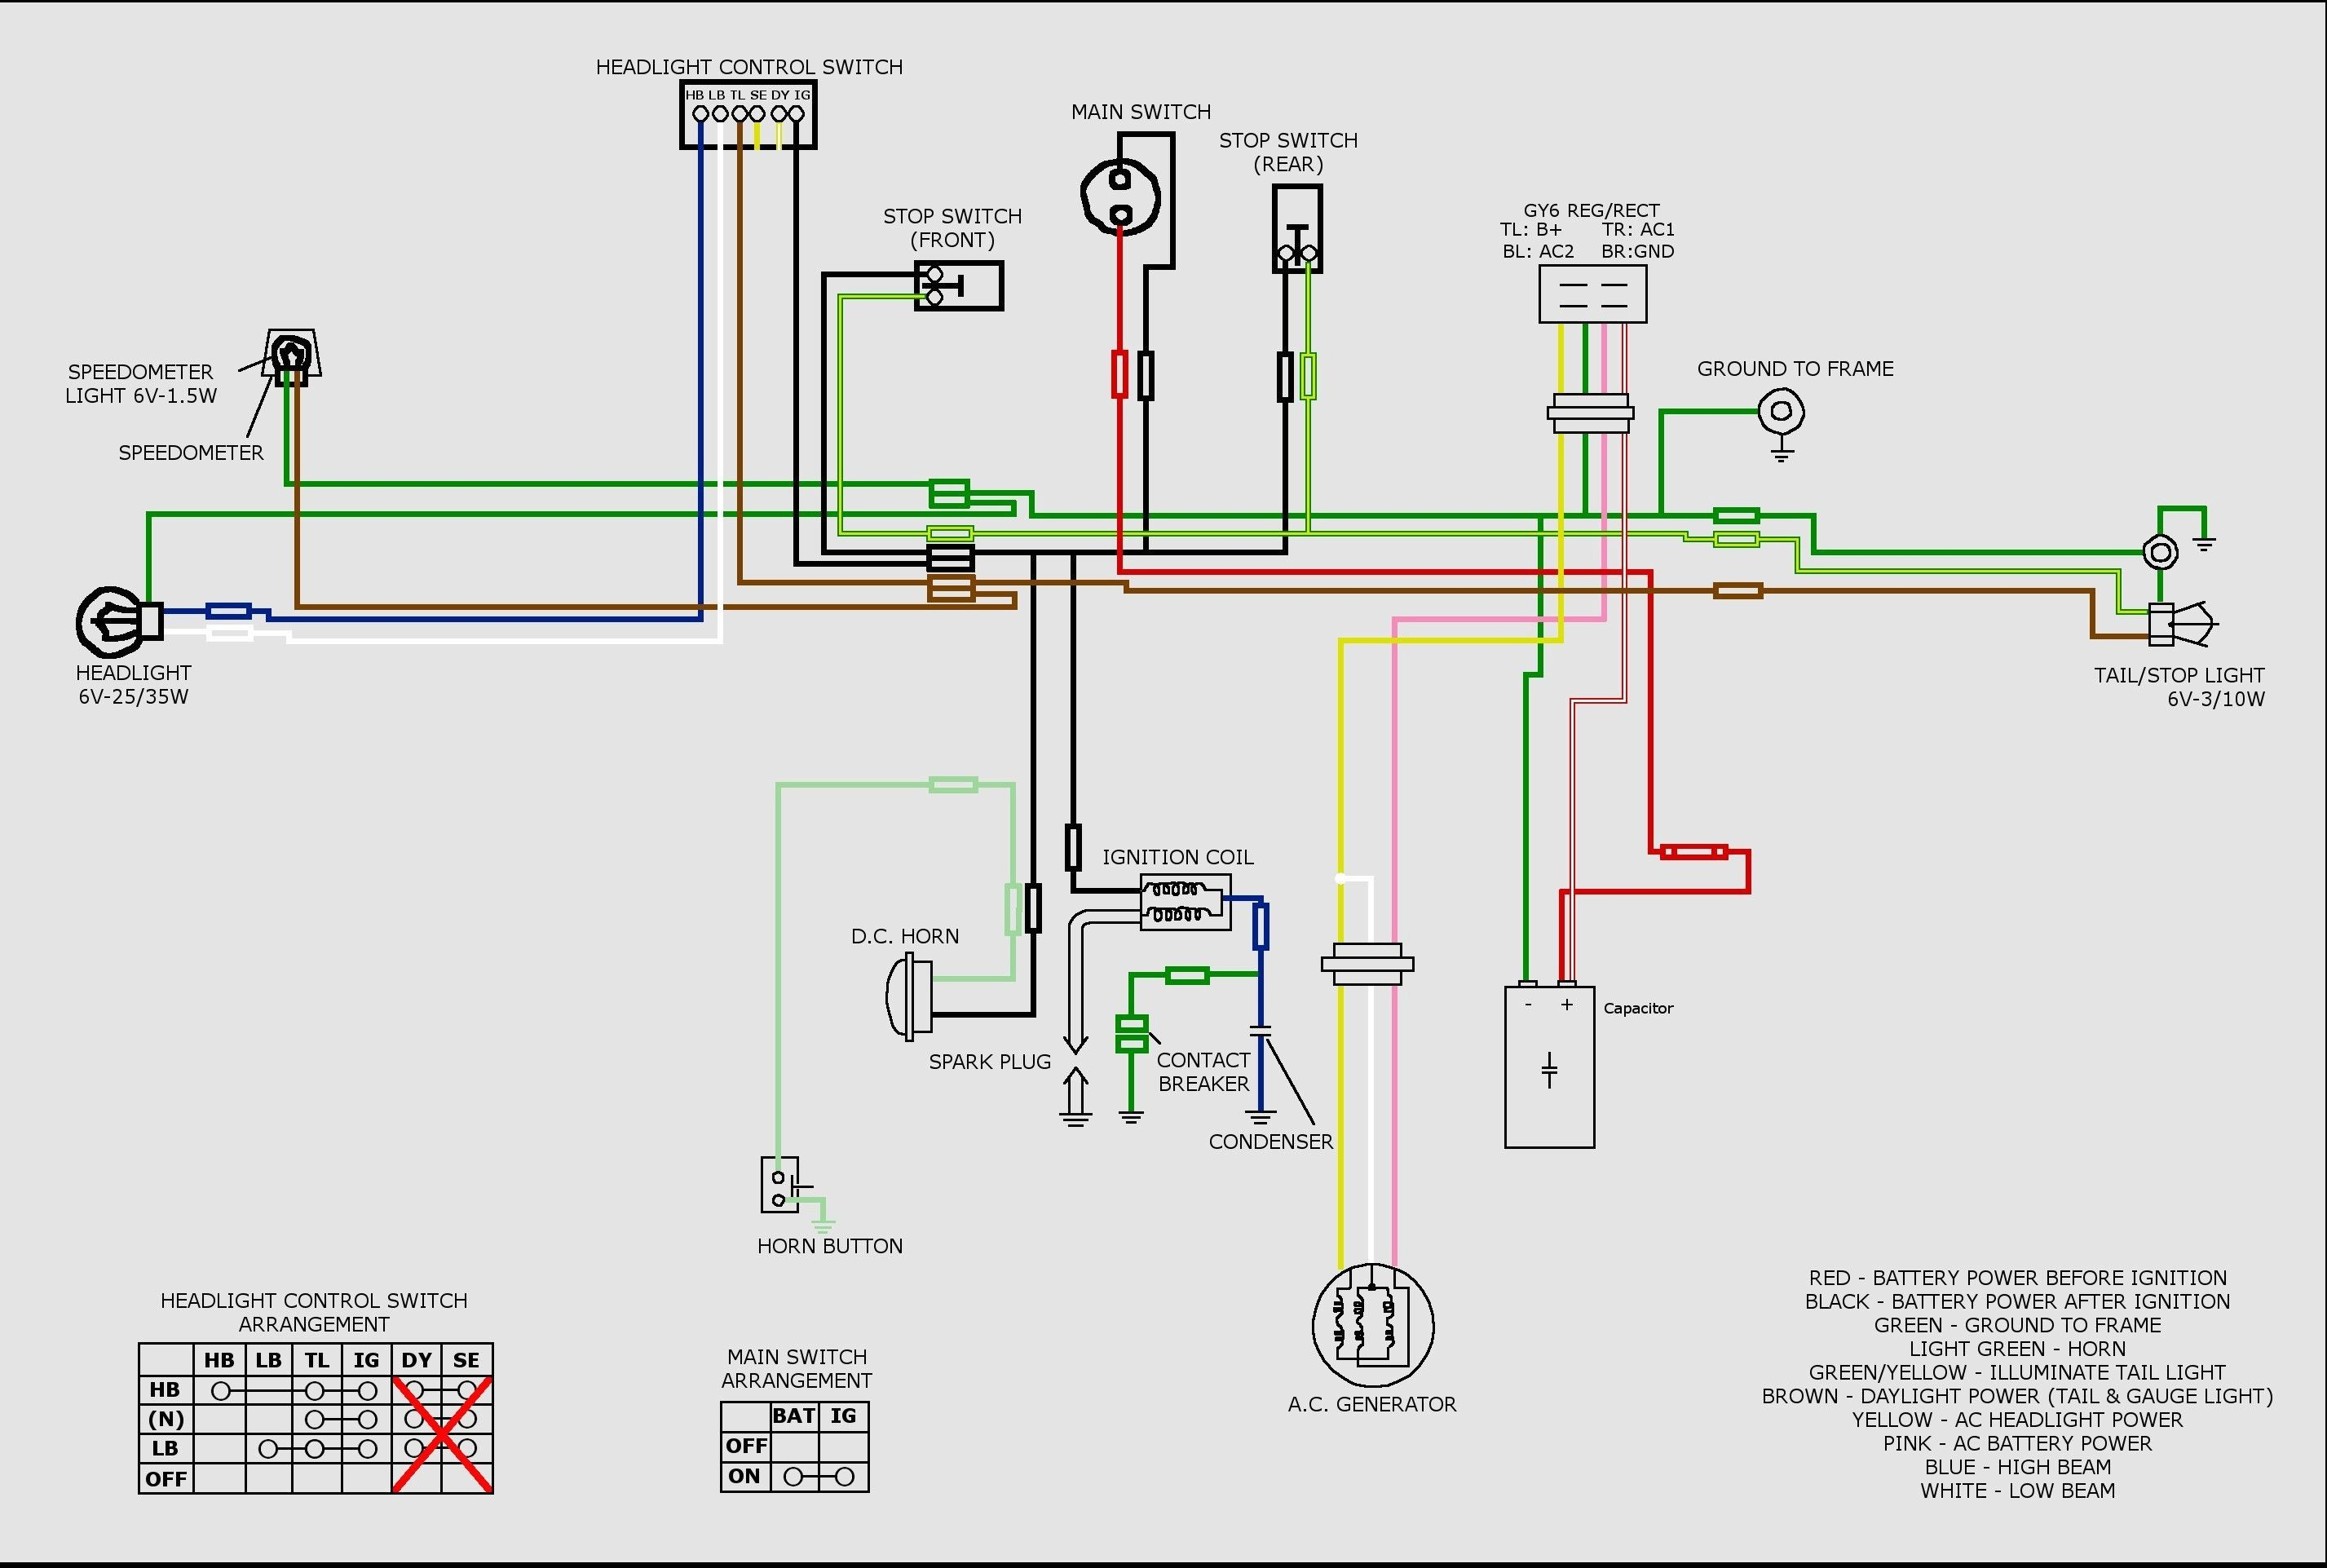 Car Frame Diagram Gy6 Wiring Diagram Awesome 150cc Gy6 Wiring Diagram within Of Car Frame Diagram